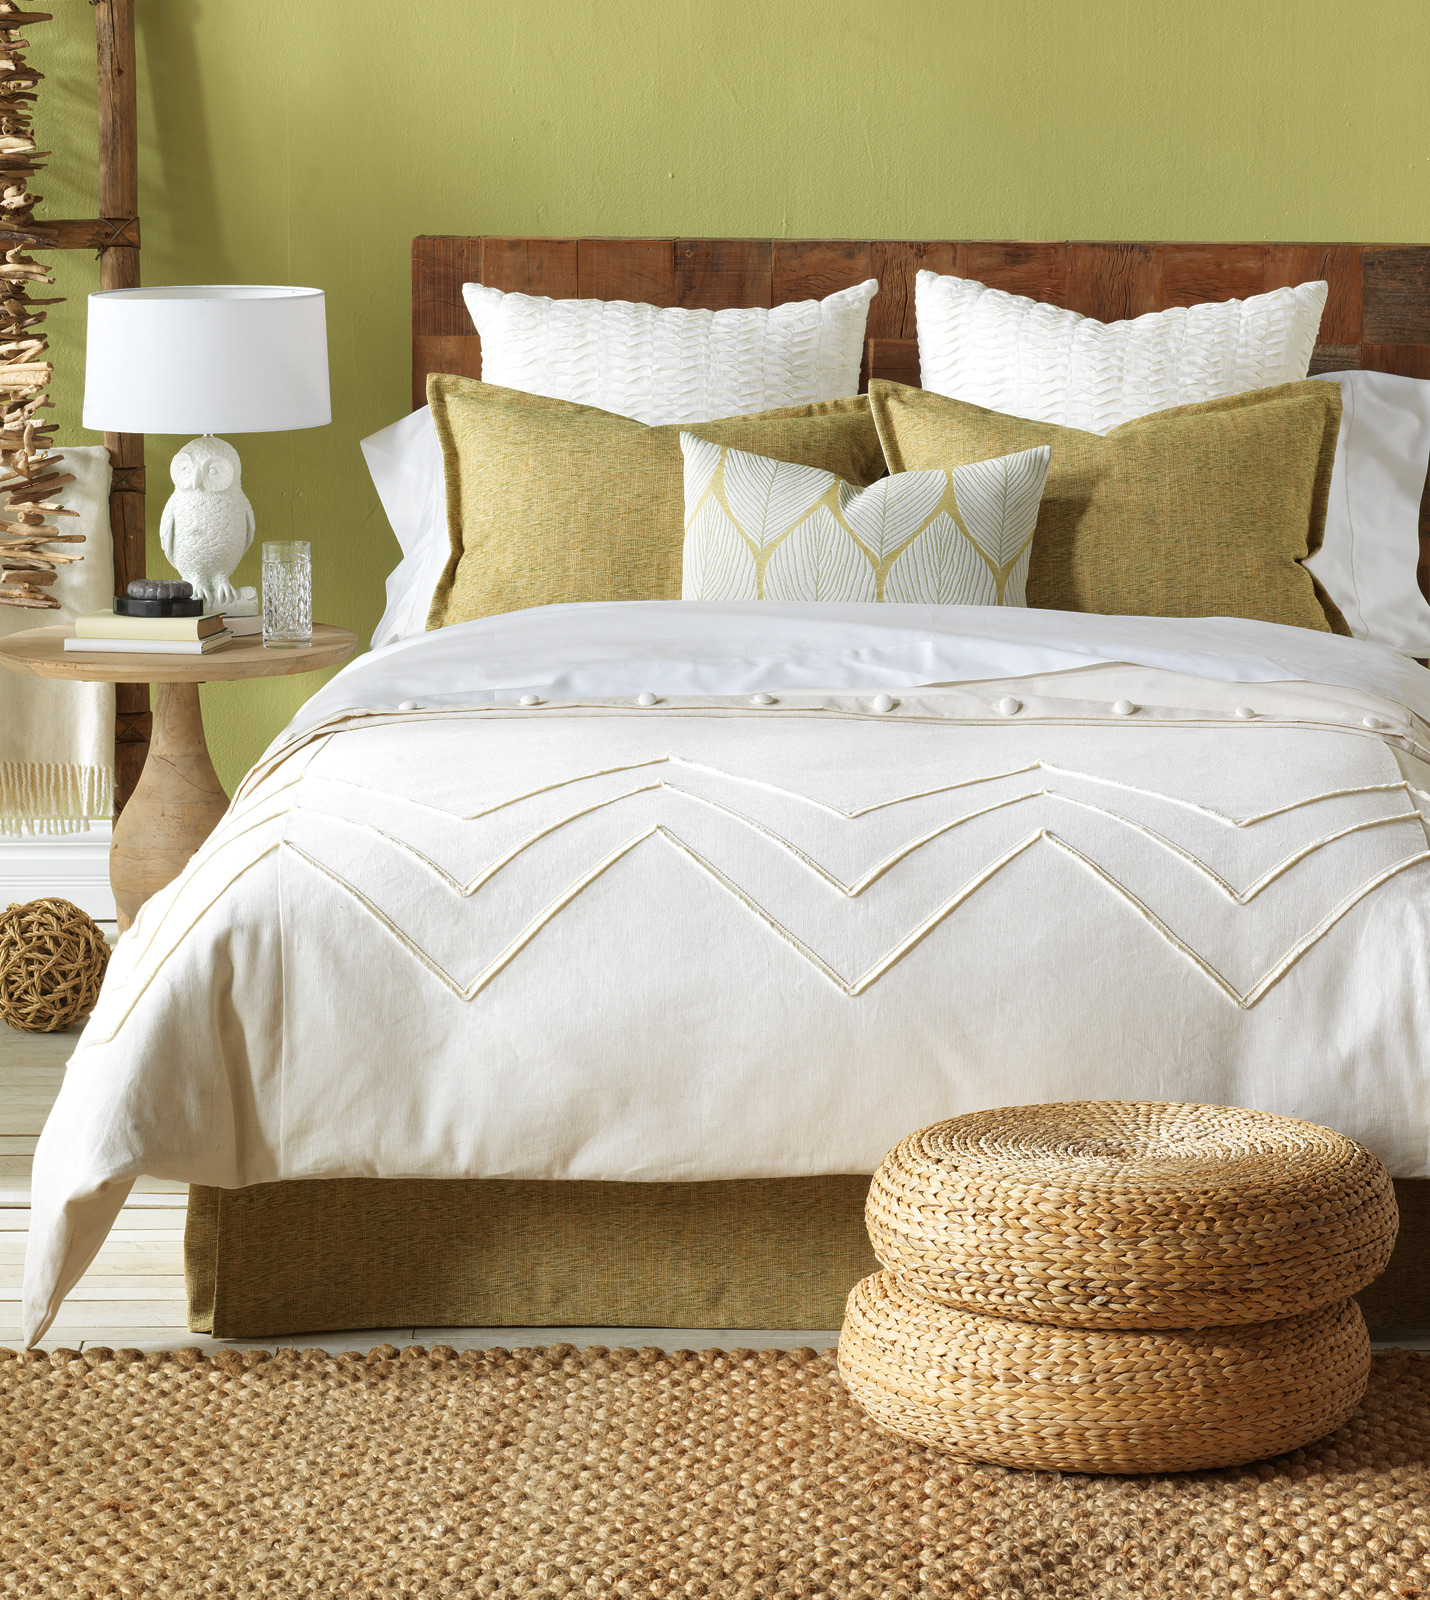 Textured Duvet Covers | White Duvet Cover Queen | Duvet Covers Target